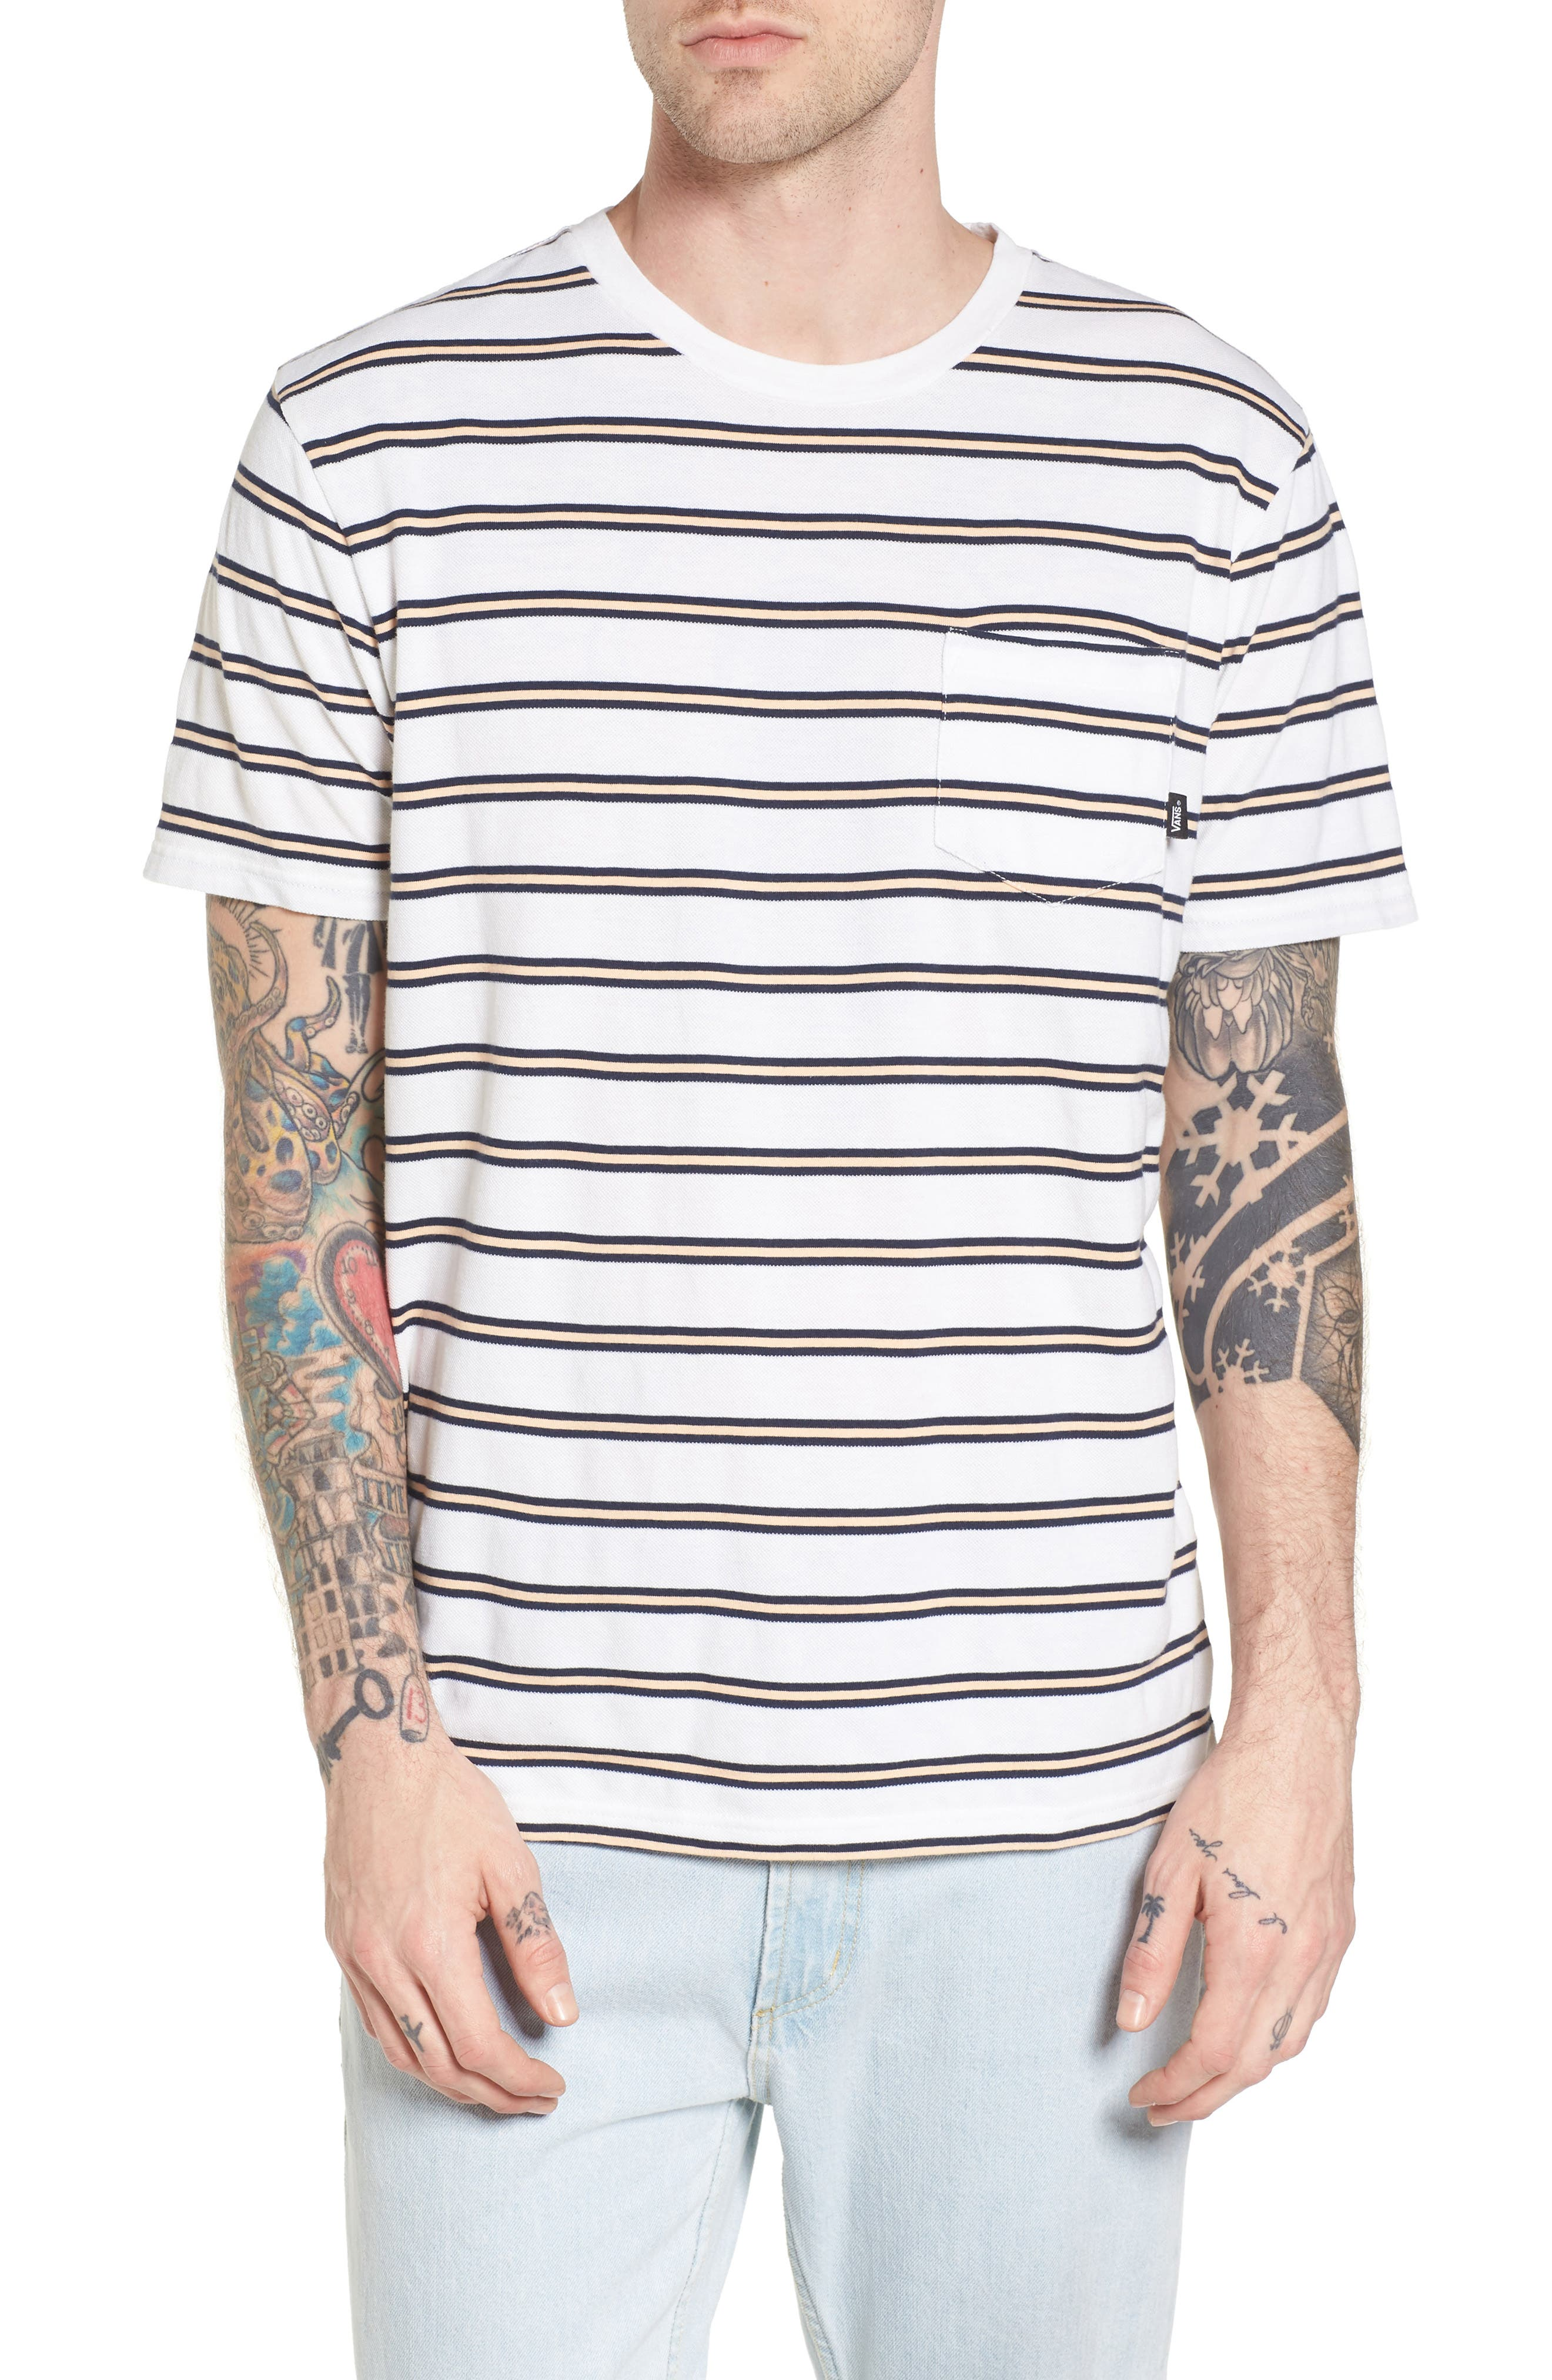 Whittier Pocket T-Shirt,                         Main,                         color,